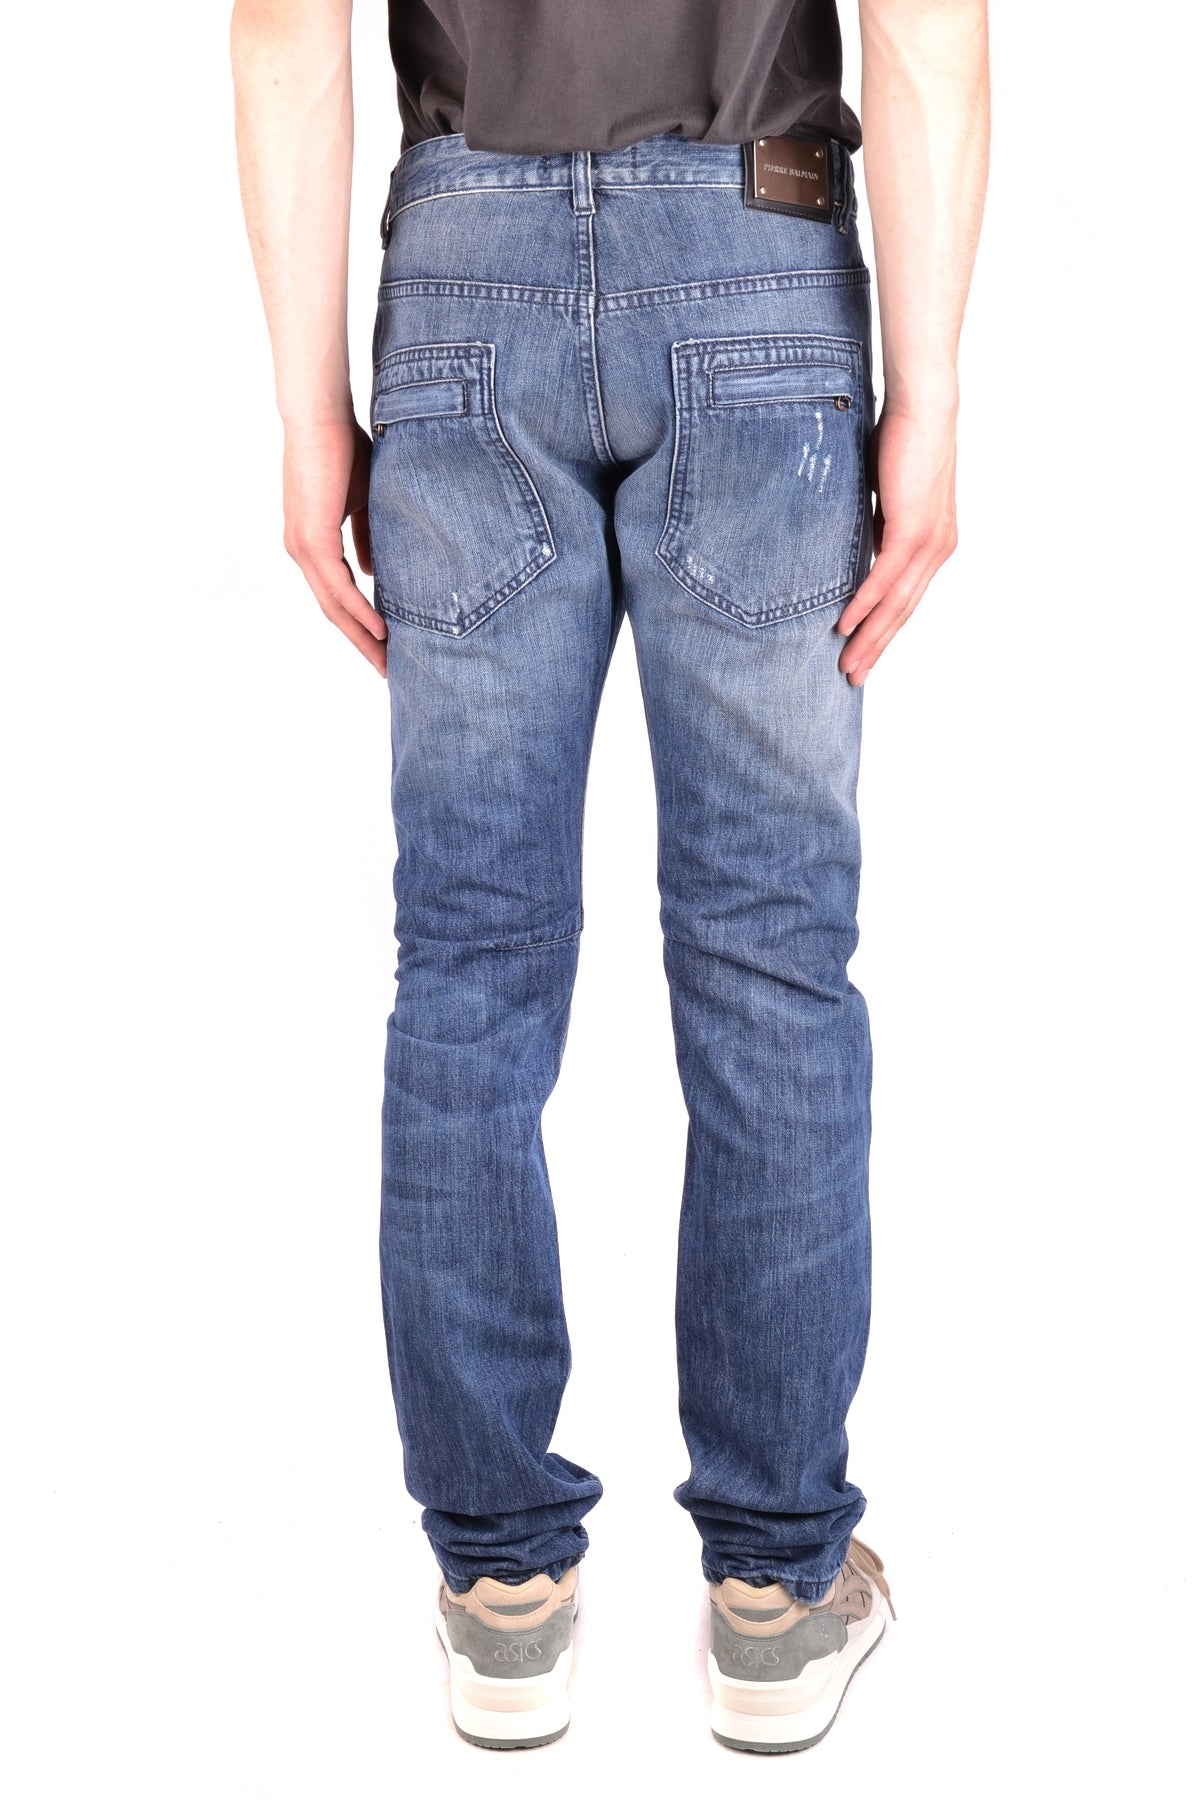 Jeans Pierre Balmain-Men's Fashion - Men's Clothing - Jeans-Product Details Composition: Cotton 35%, Polyester 65%Size: UsGender: ManMade In: ItalySeason: Fall / WinterMain Color: BlueClothing Type: JeansTerms: New With Label-Keyomi-Sook